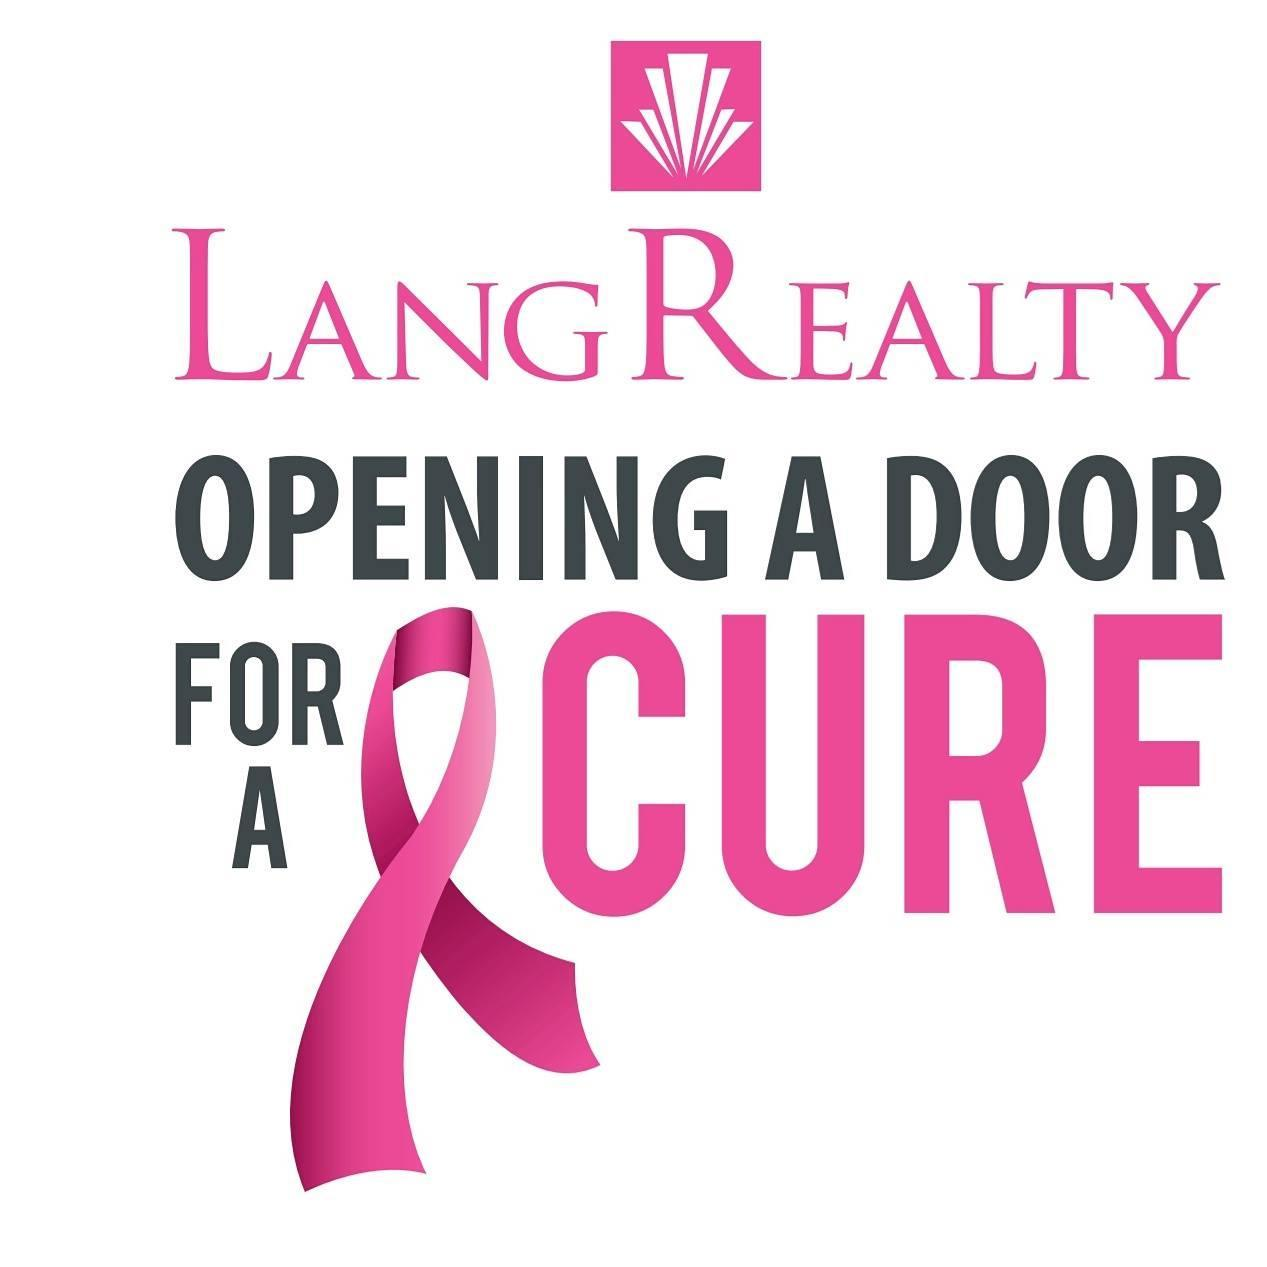 Lang Realty Goes Pink for Breast Cancer Awareness